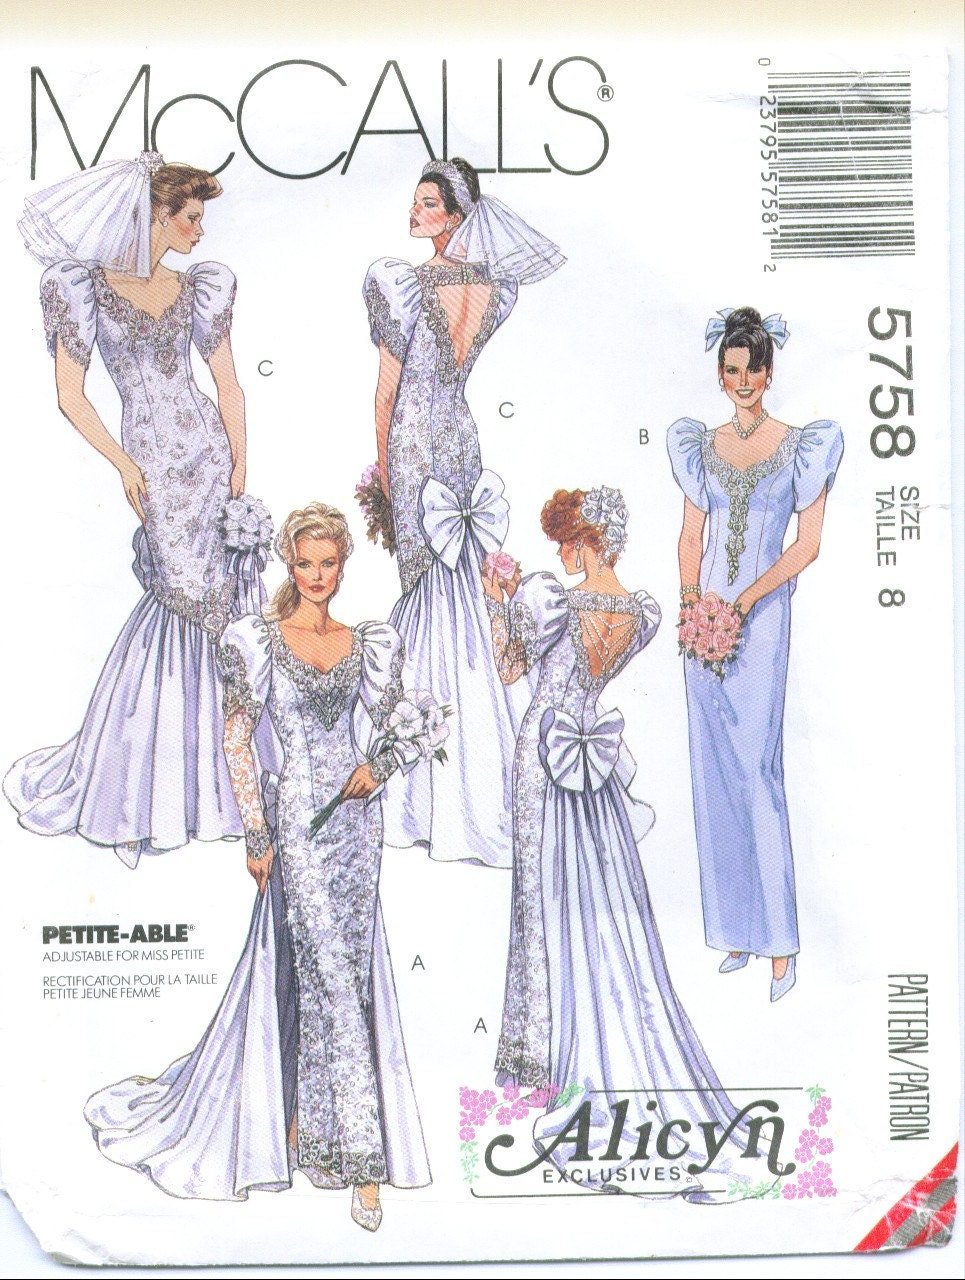 Mccall 39 s 5758 alicyn wedding dress sewing pattern size 8 for How to make a wedding dress pattern